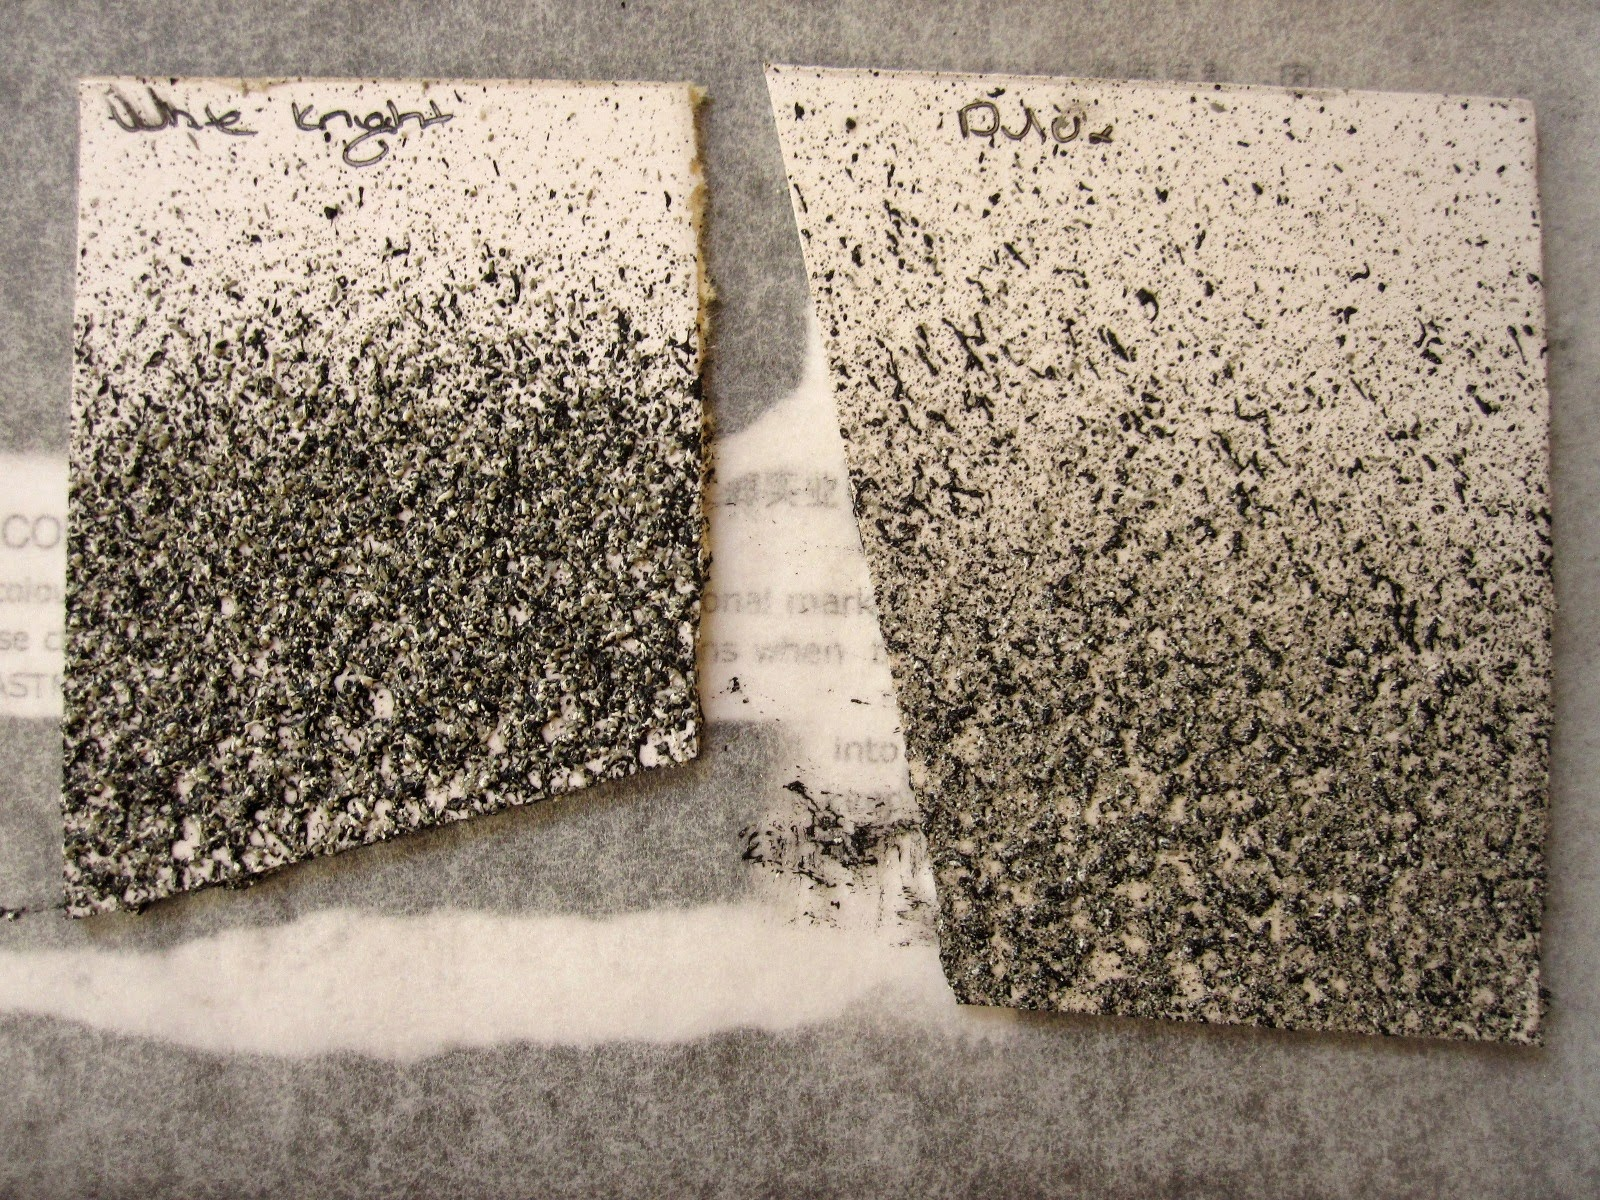 Two sample pieces of carboard, painted with different brands of concrete-looking paint.